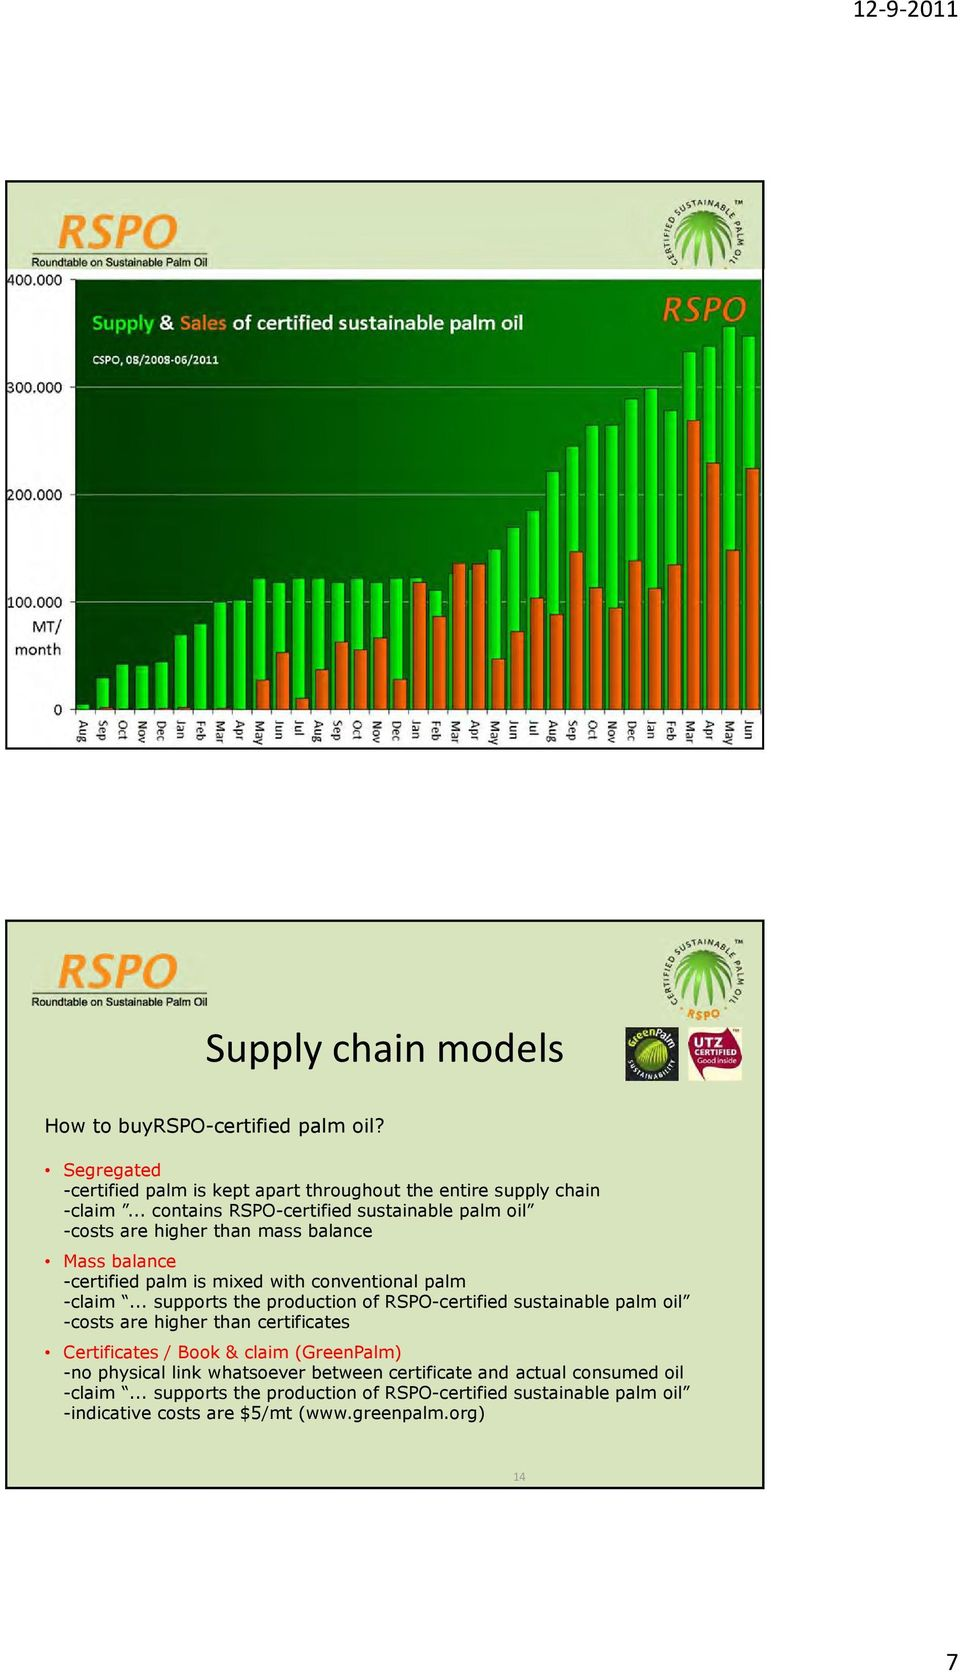 .. supports the production of RSPO-certified sustainable palm oil -costs are higher than certificates Certificates / Book & claim (GreenPalm) -no physical